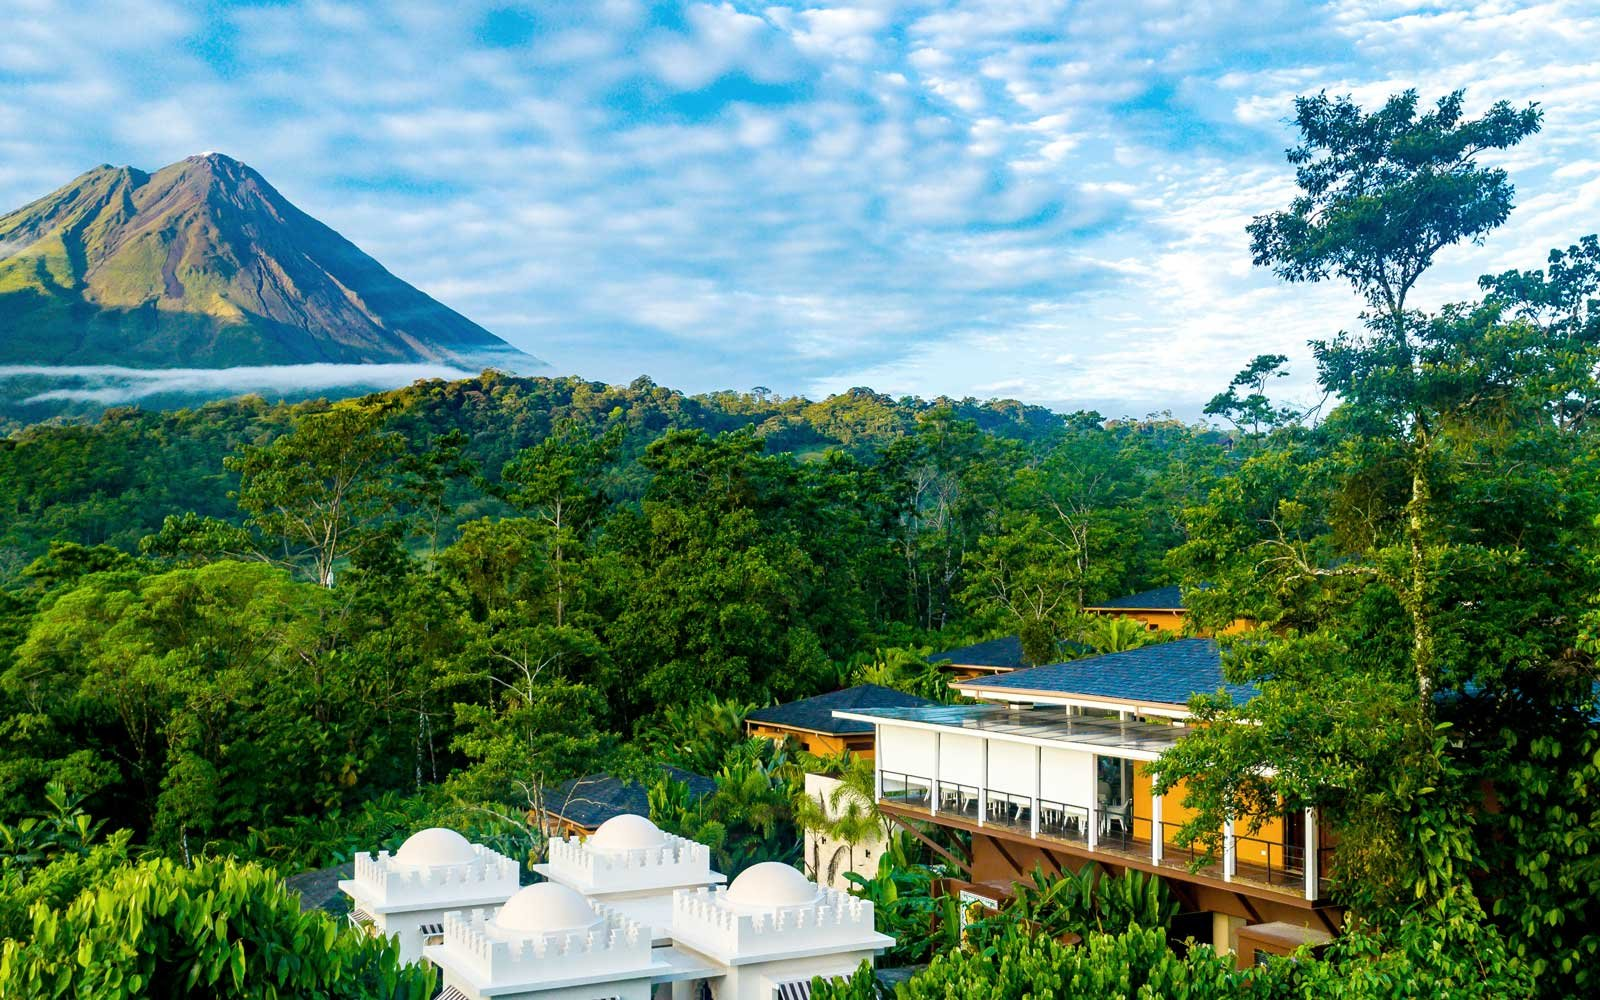 View of the Nayara Springs resort and the Arenal Volcano, in Costa Rica